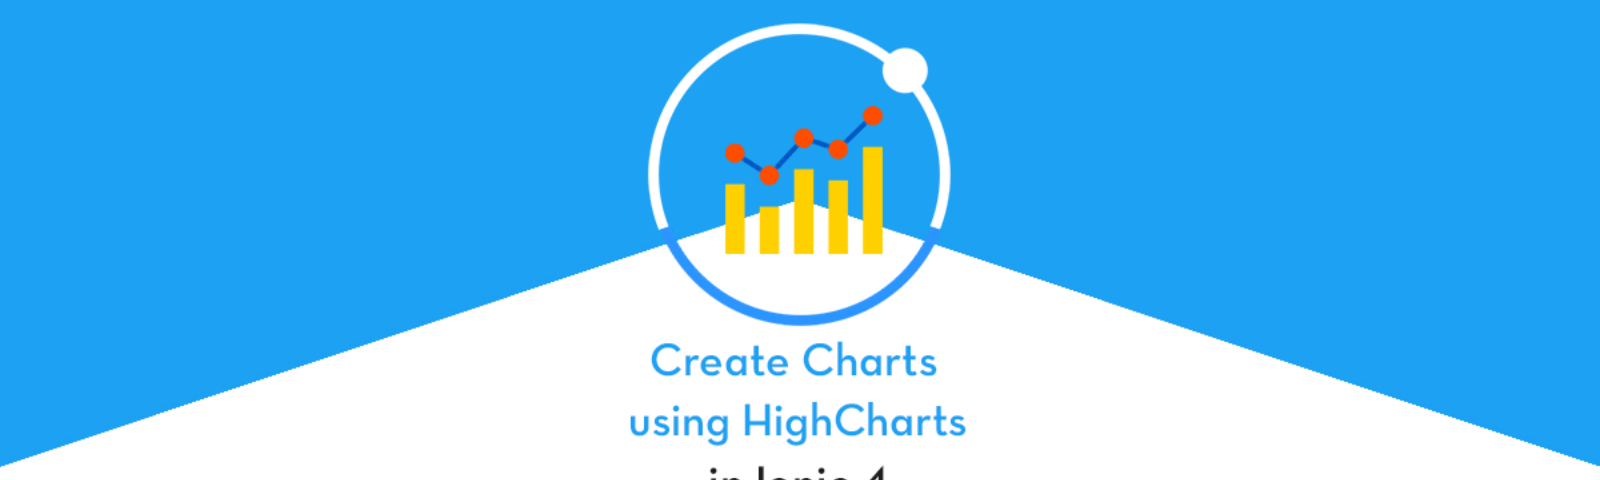 Create Charts in Ionic 4 apps and PWA: Part 3 - Using HighCharts